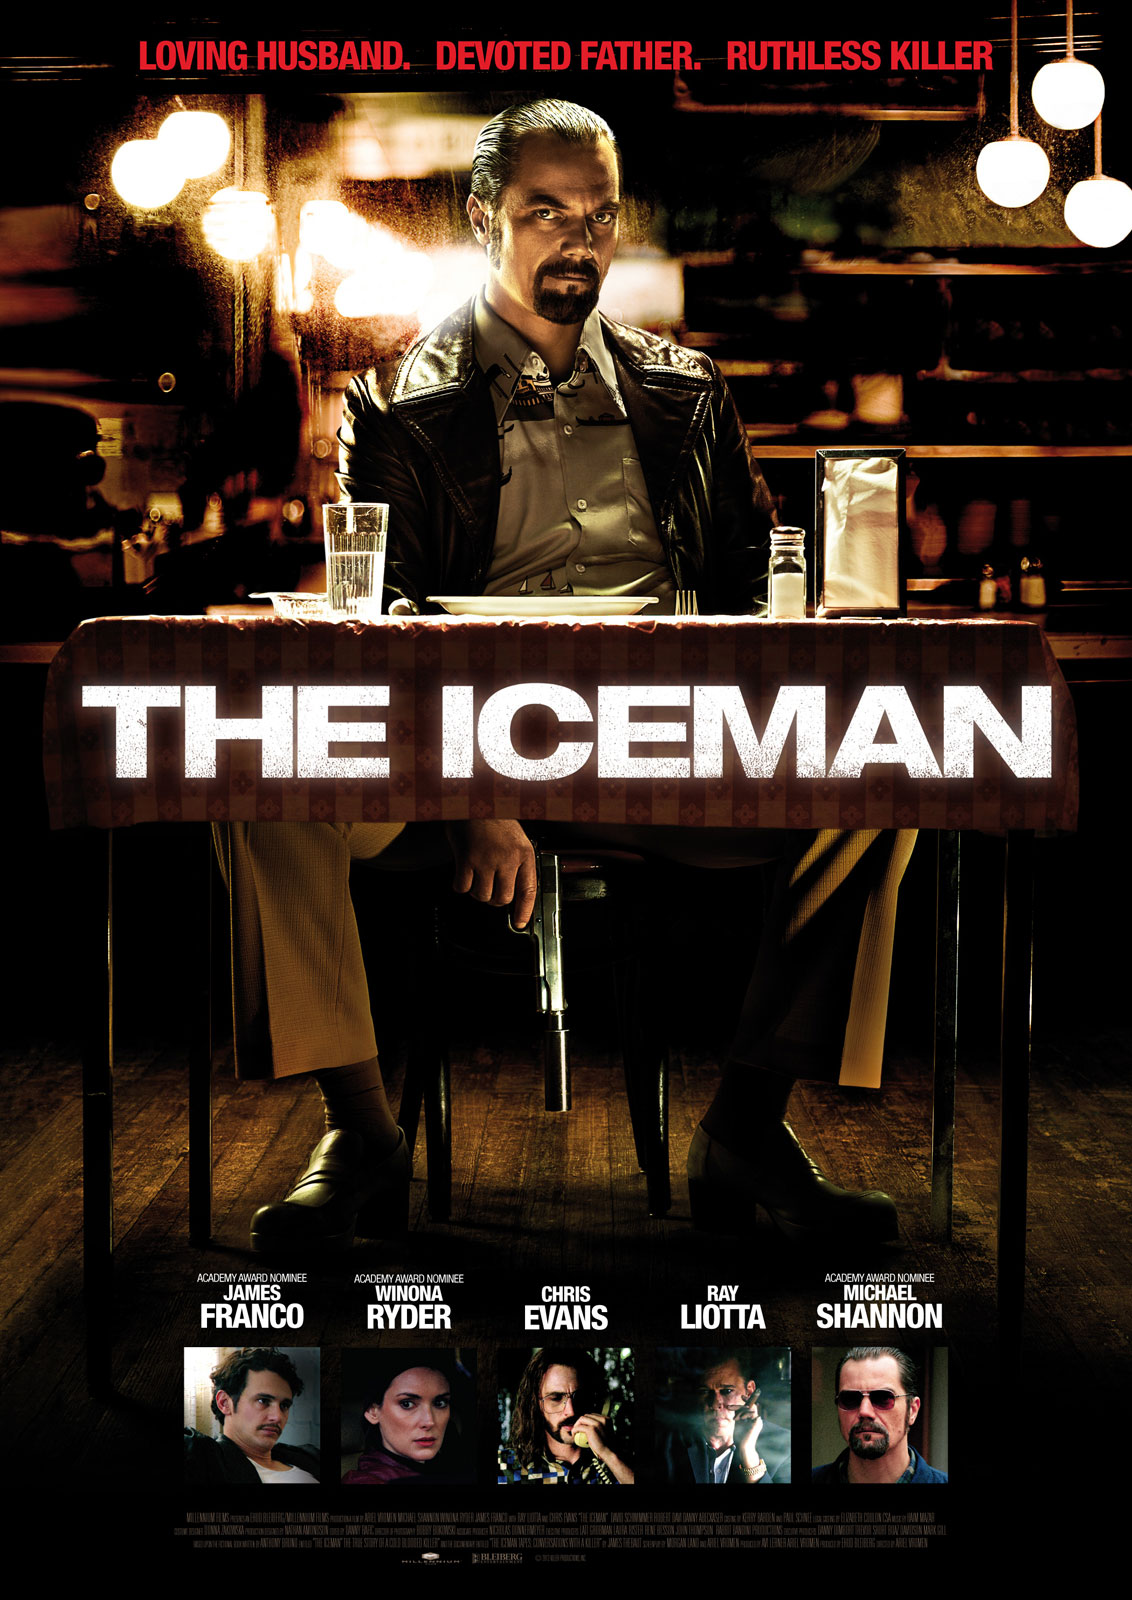 The Iceman Did You See That One